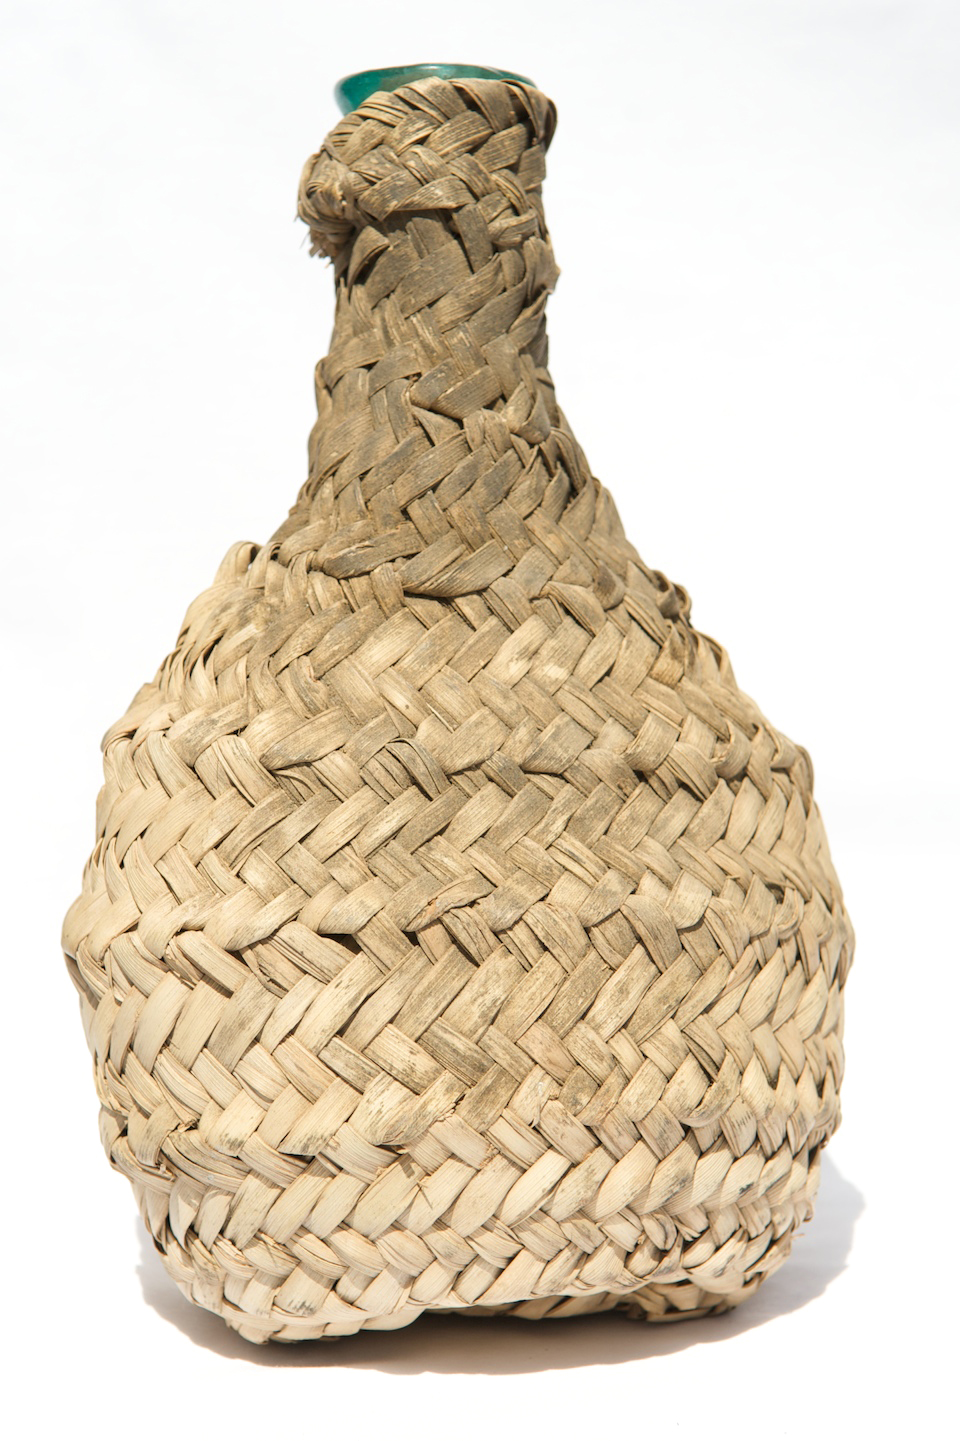 PC-018 (Wicker Covered)